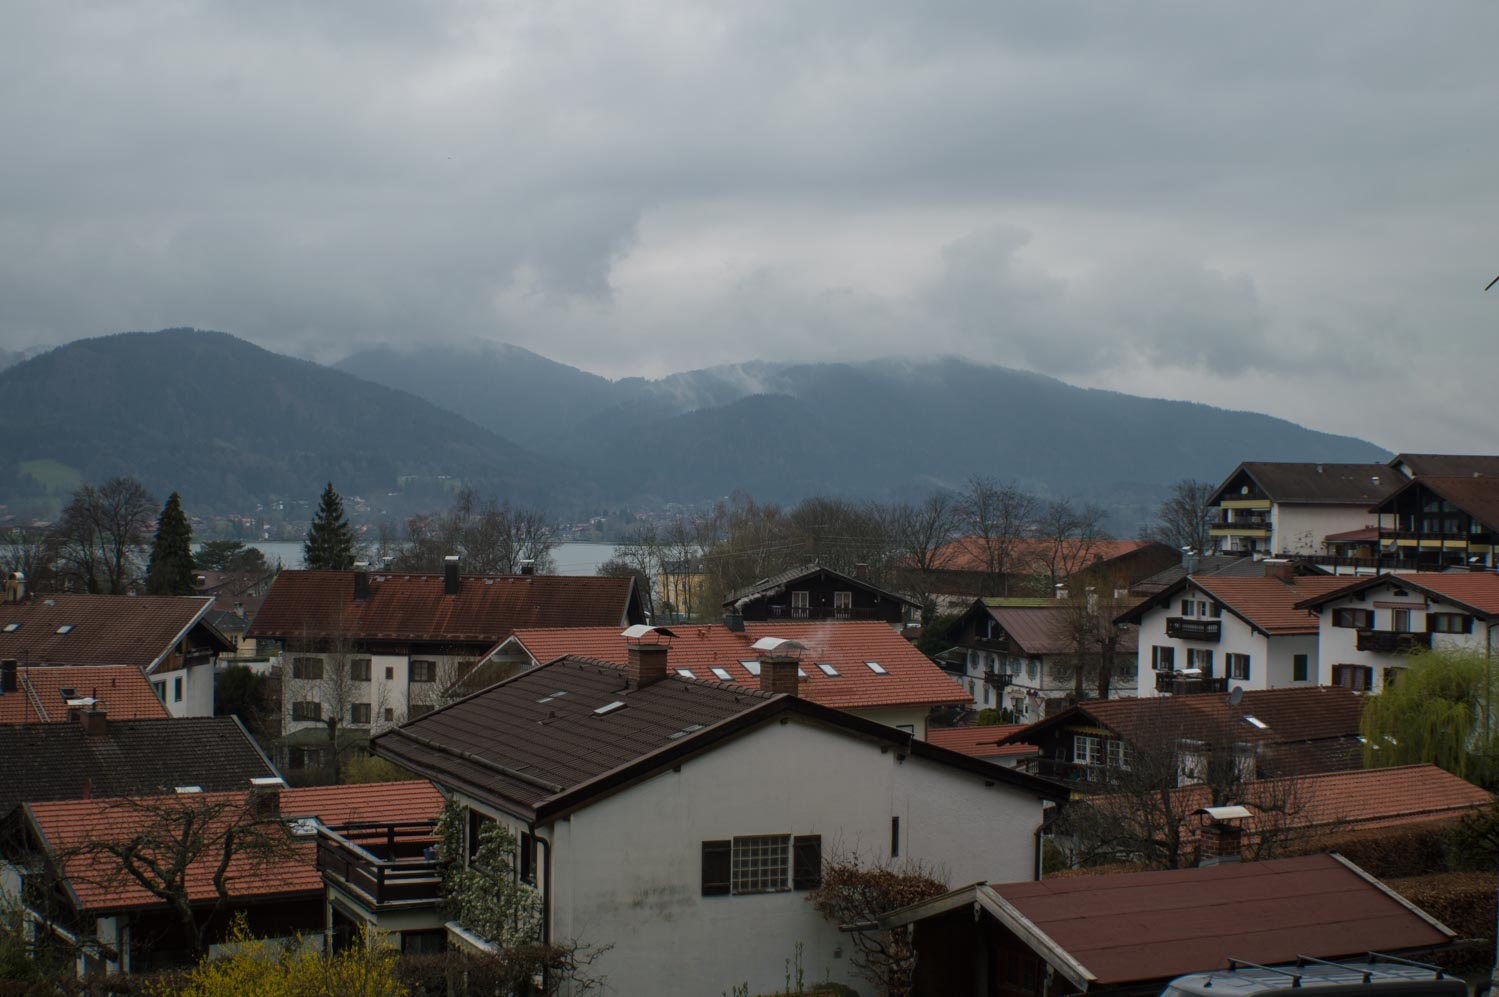 View on Tegernsee from above